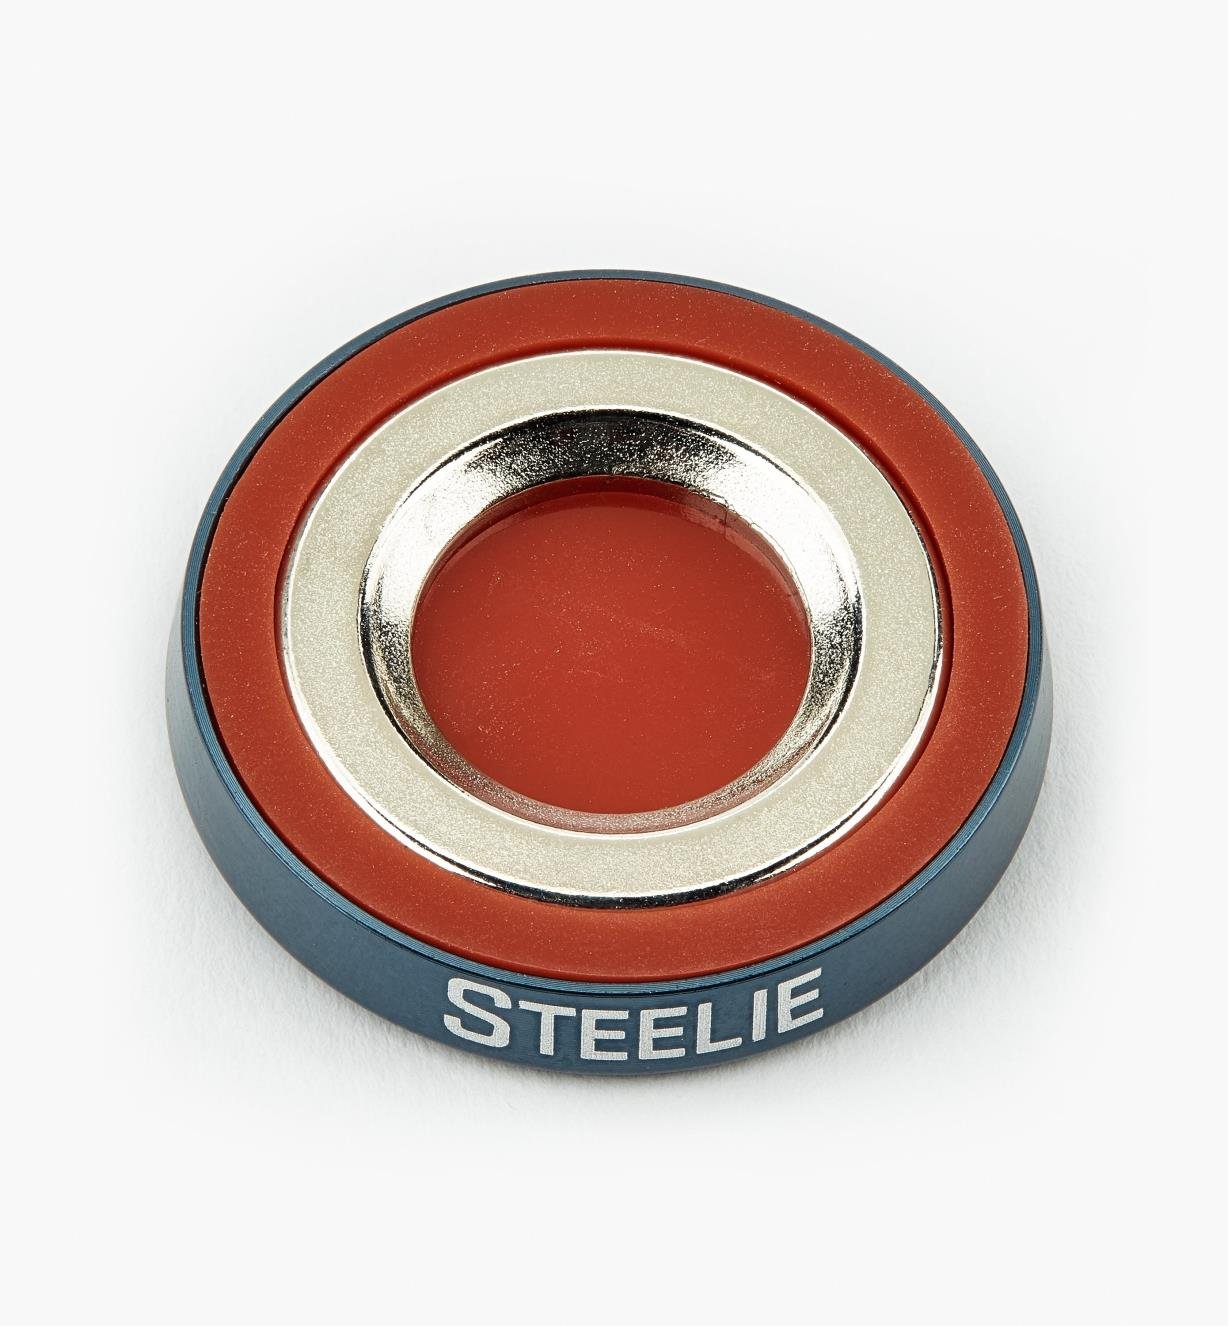 68K0788 - Steelie HobKnob, Additional Magnet